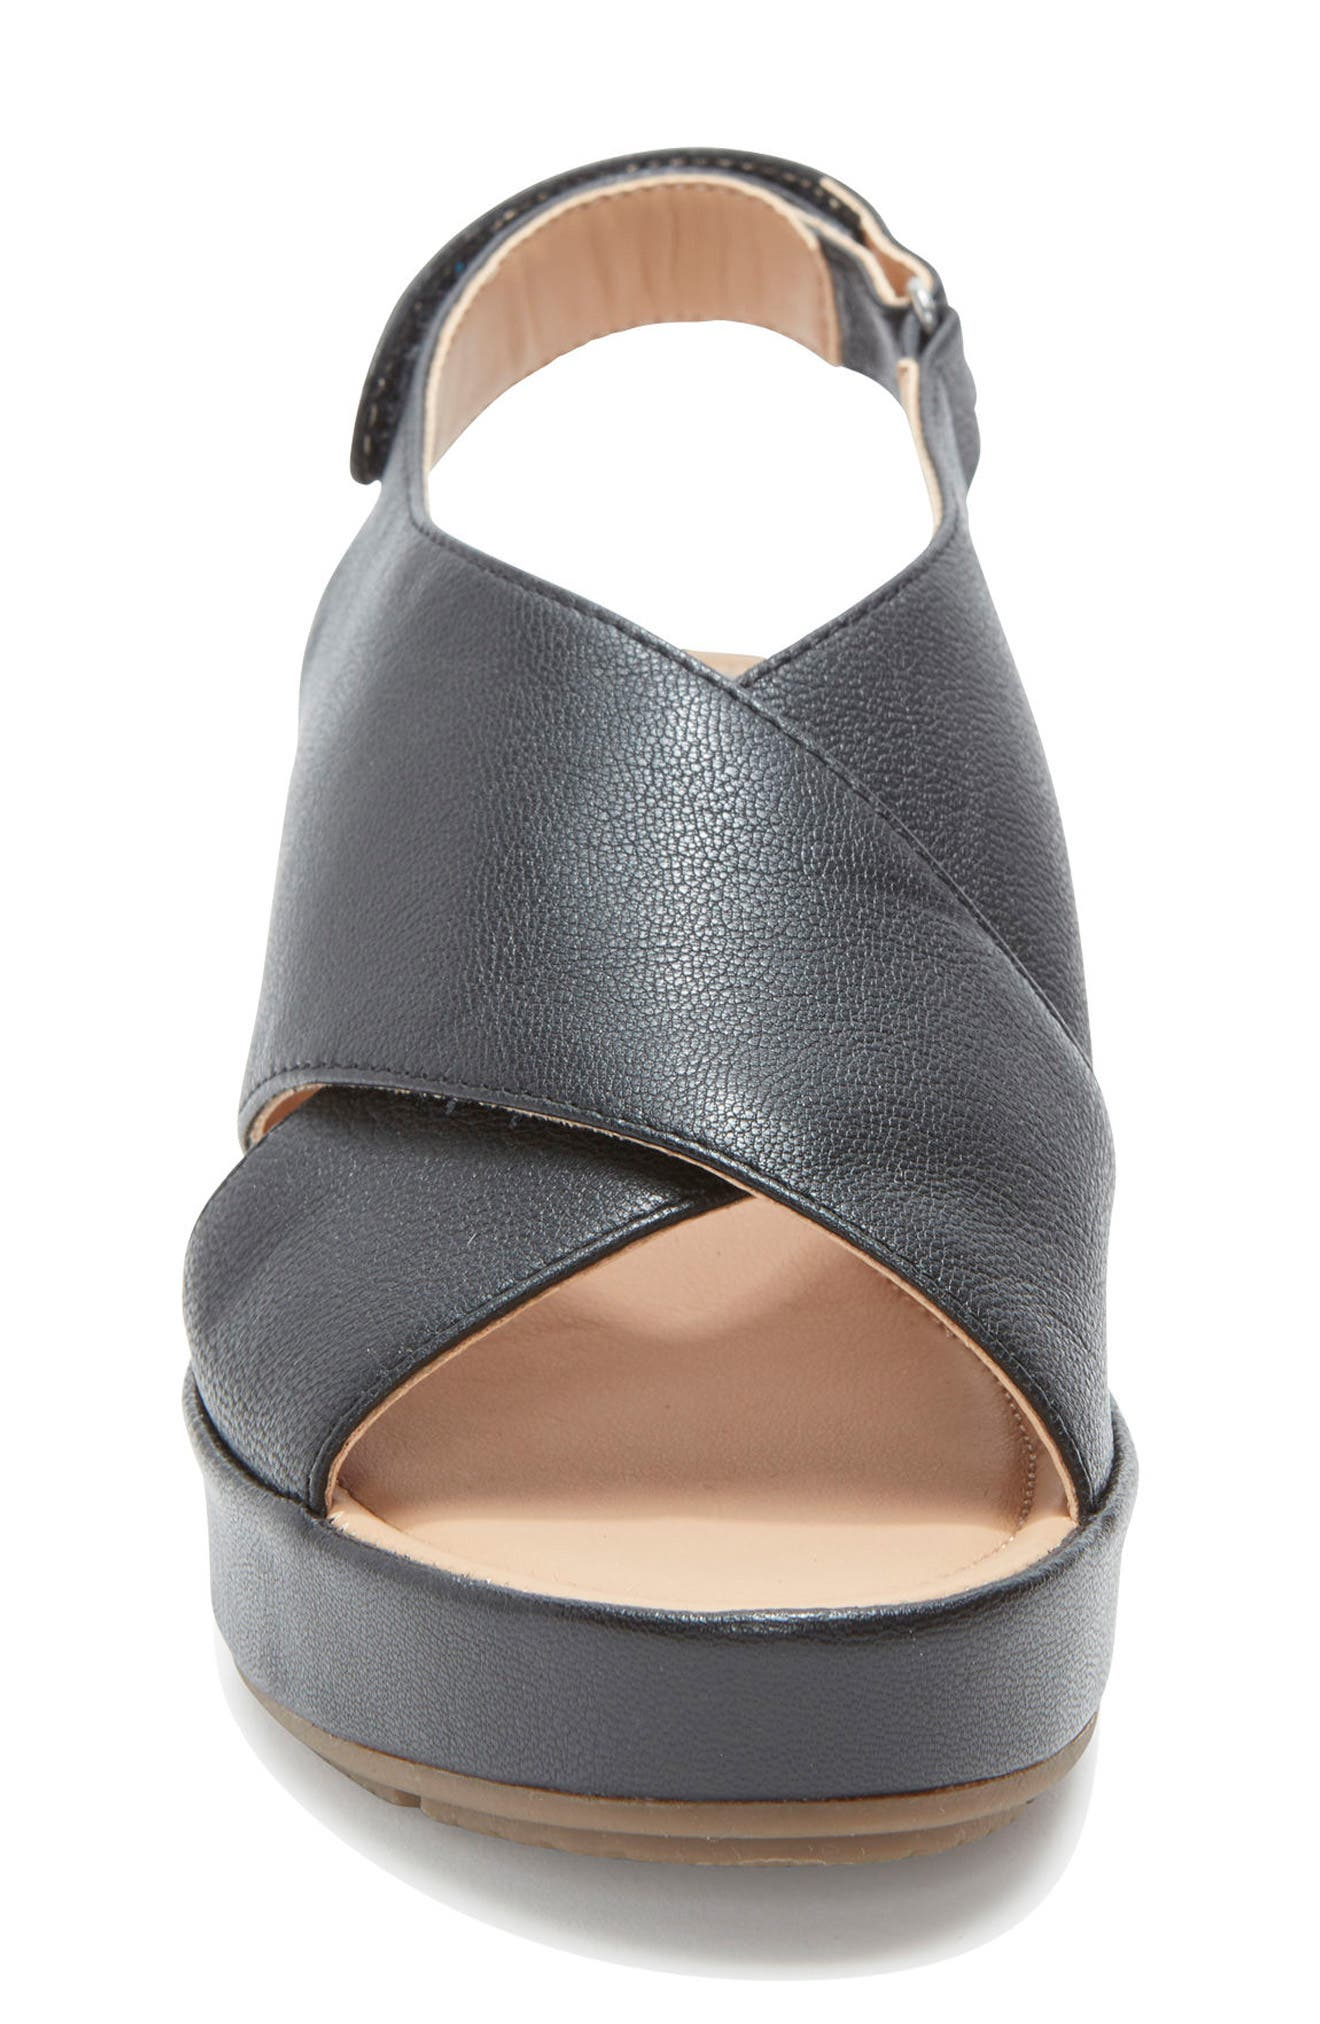 ME TOO, Arena Wedge Sandal, Alternate thumbnail 4, color, BLACK LEATHER